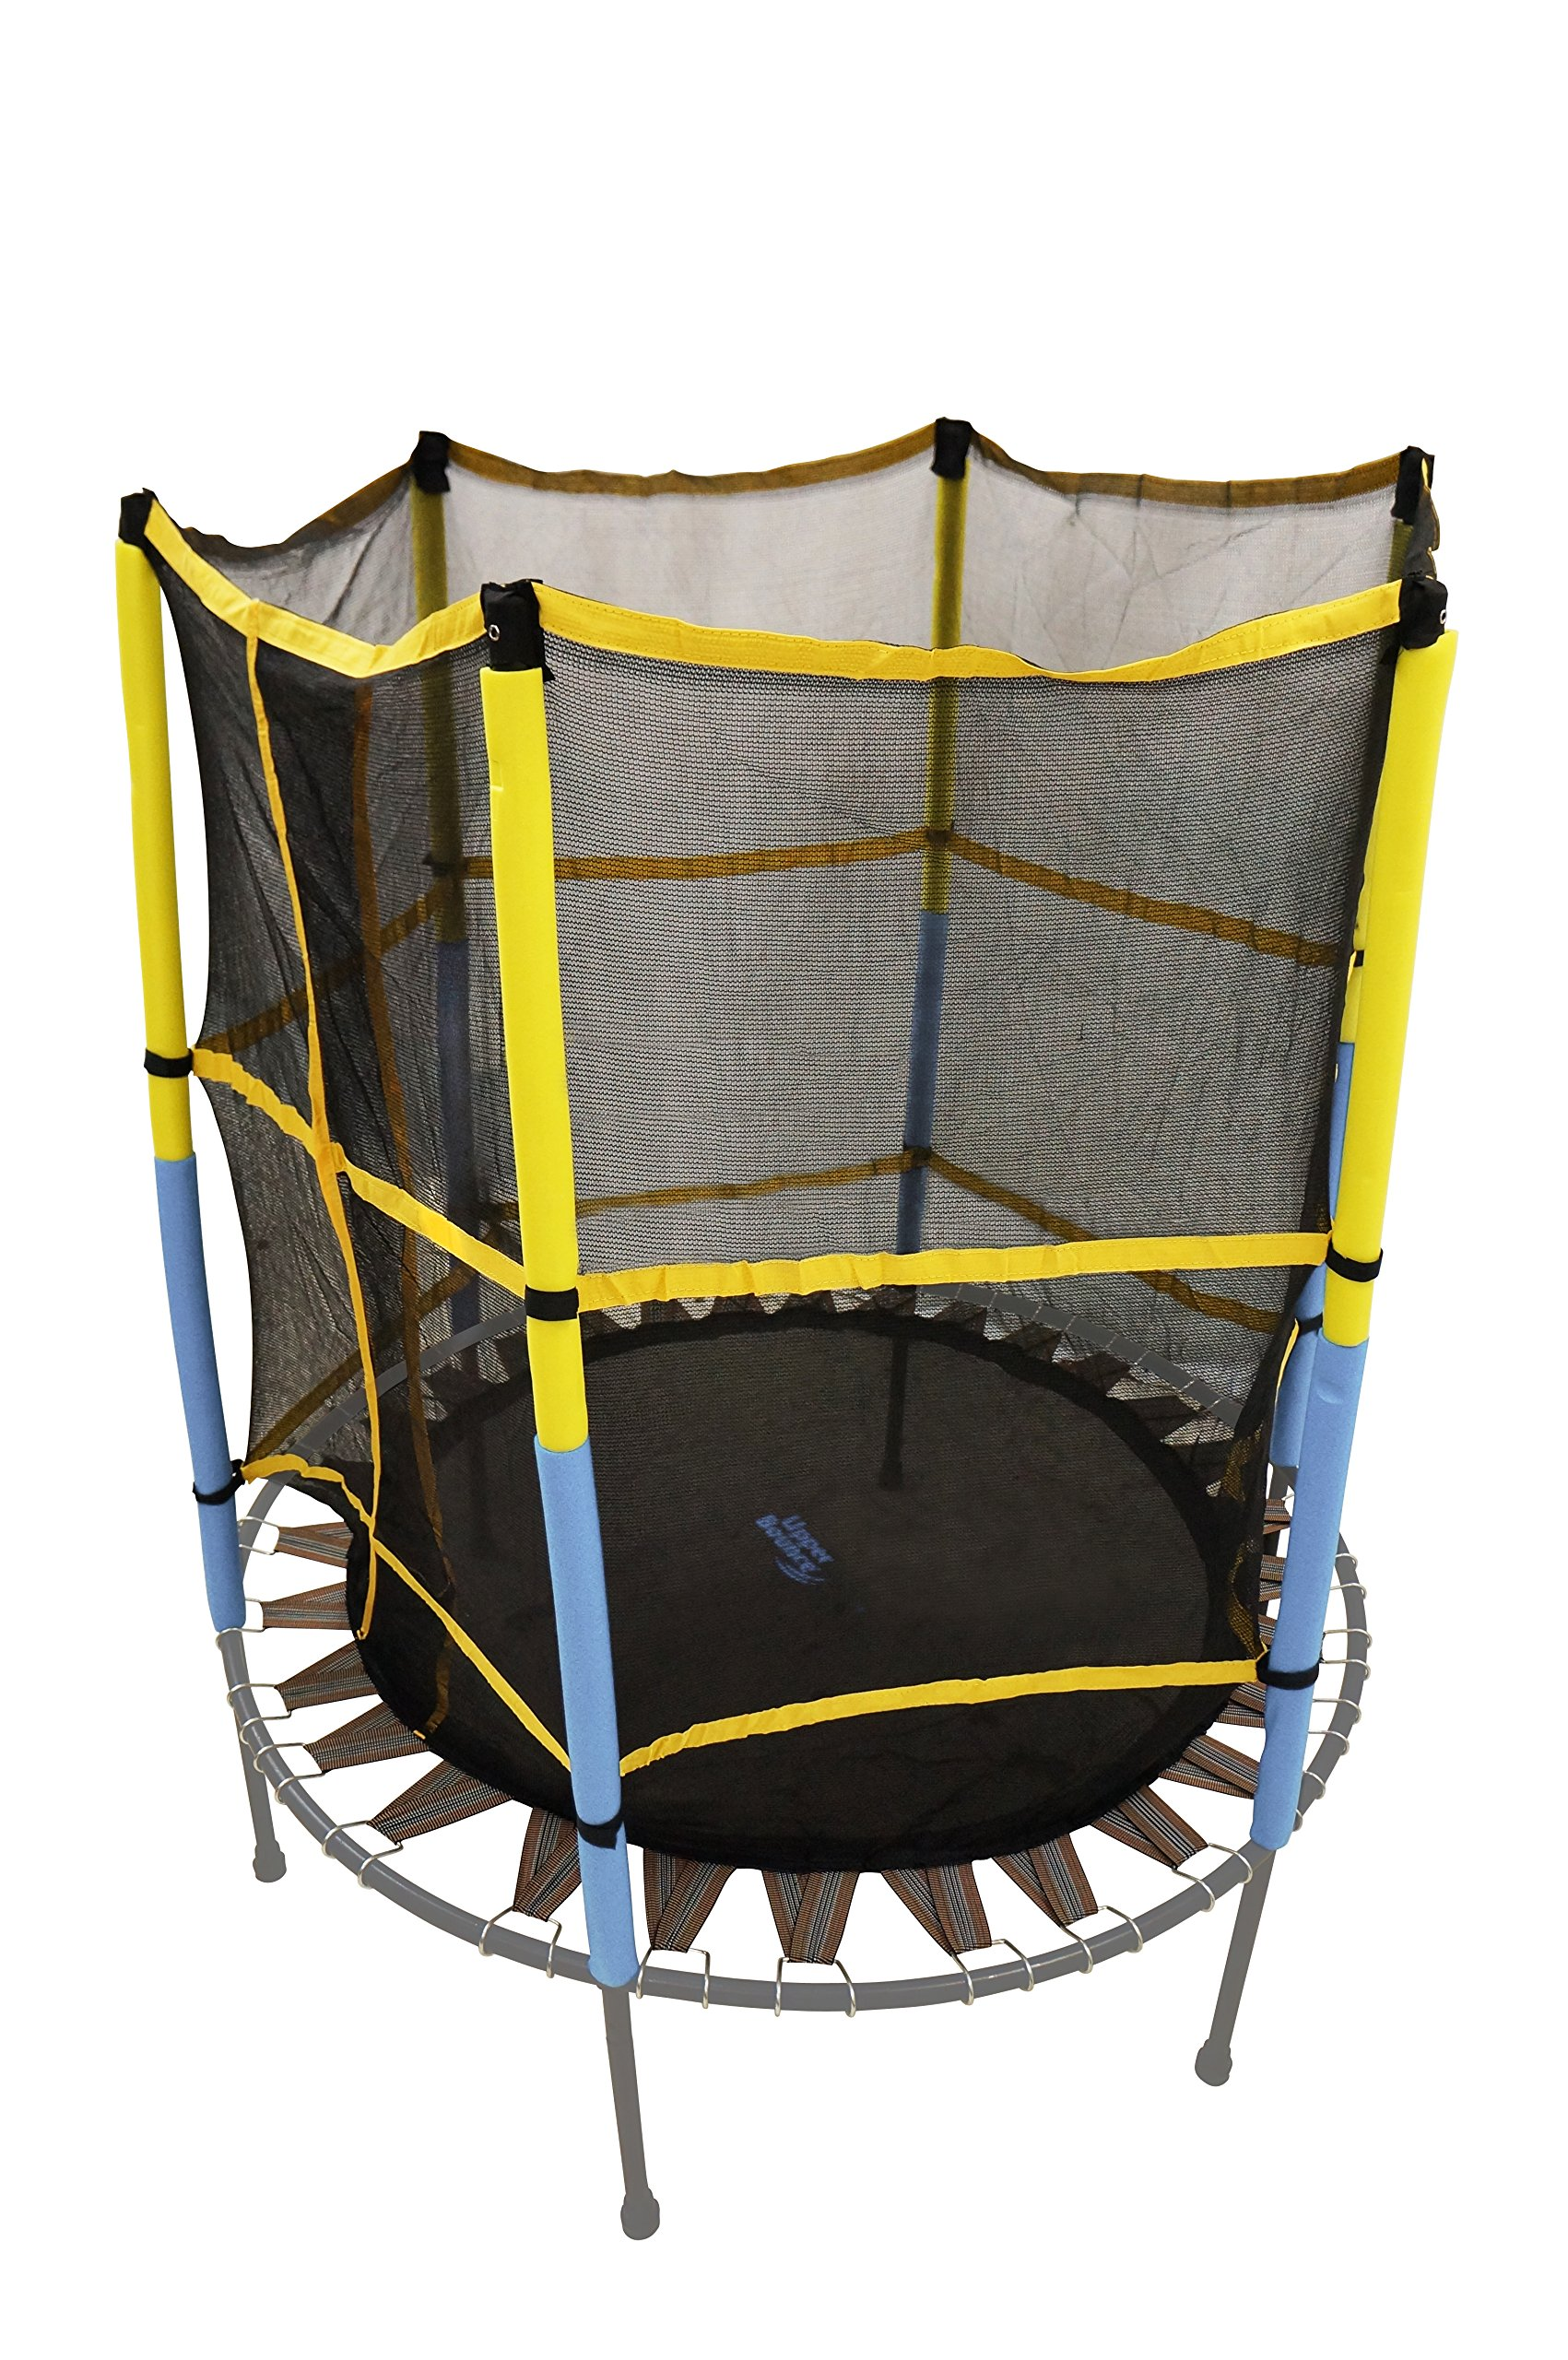 Trampoline Replacement Jumping Band Mat With Attached Safety Net For 55'' Round Frame - Clips Included - ''Net & Mat ONLY'' by Upper Bounce